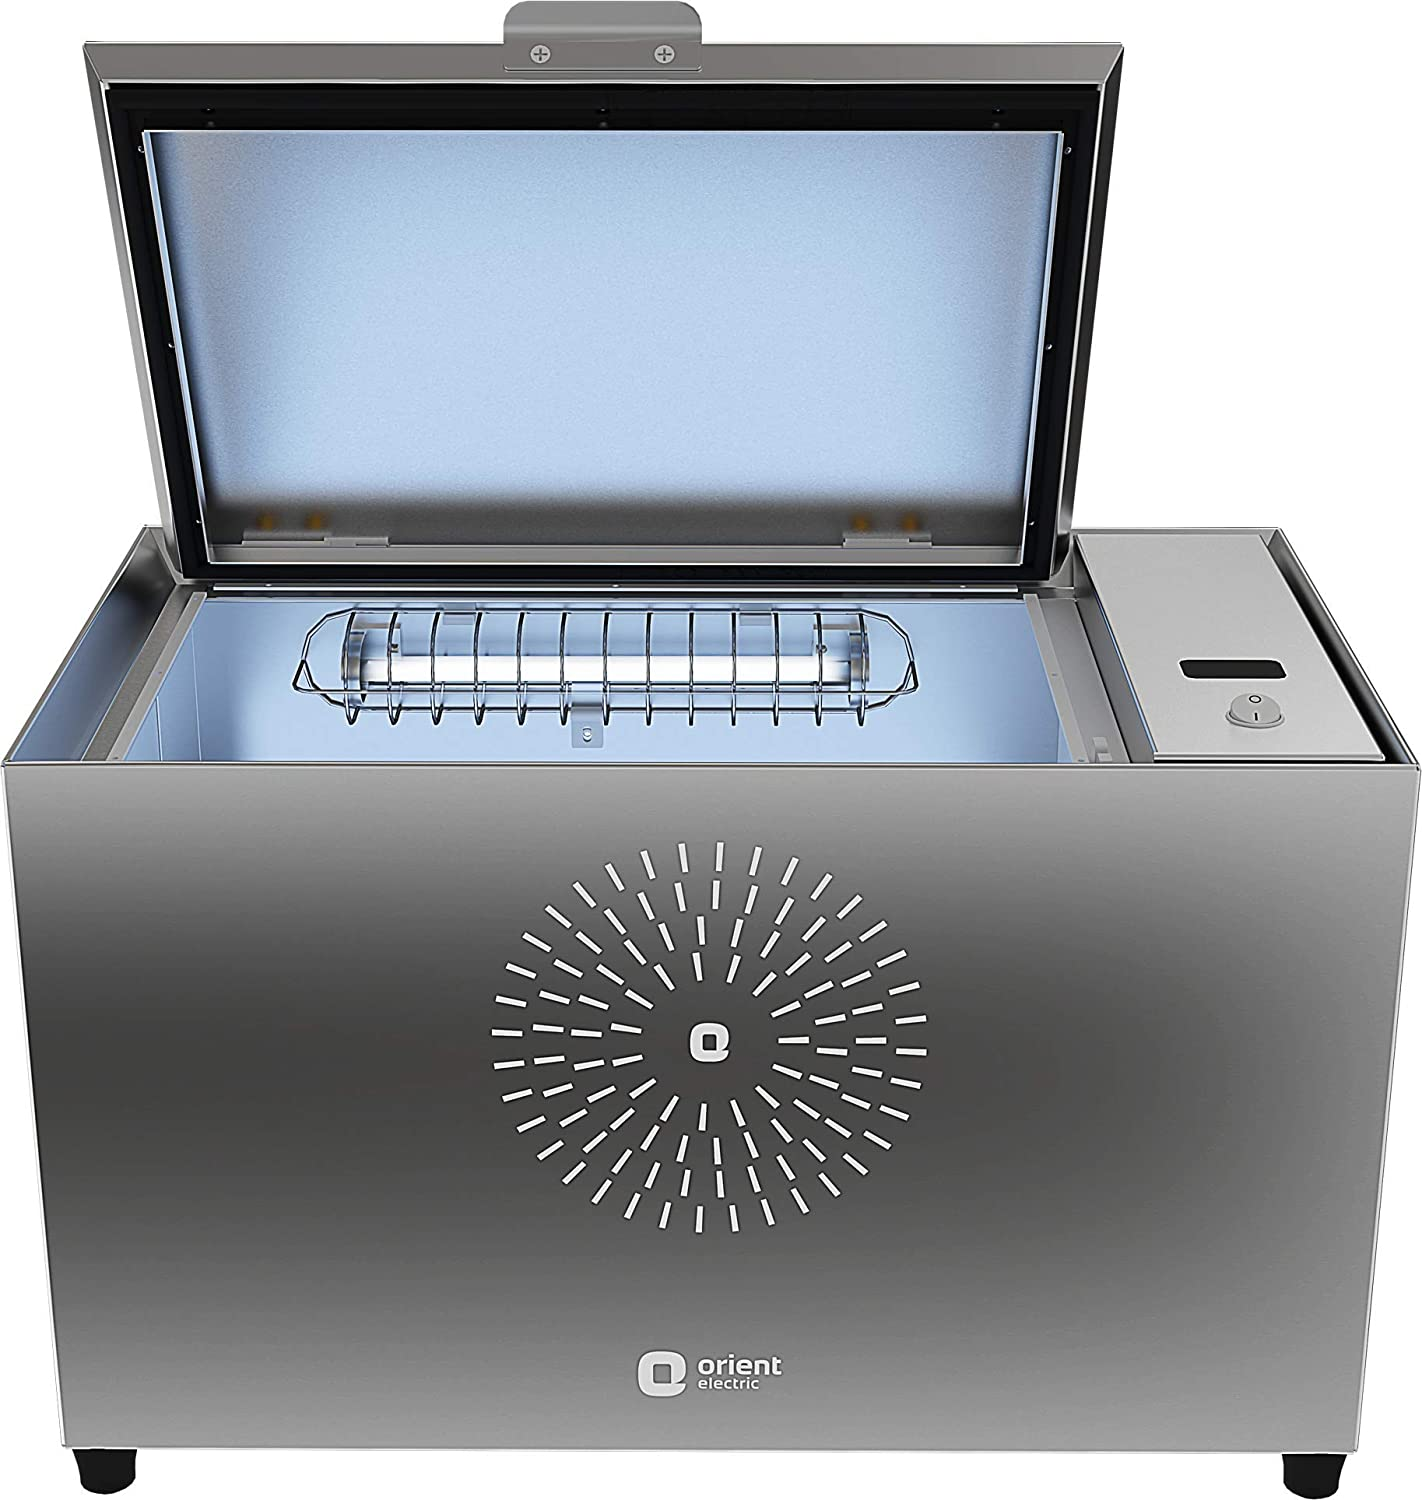 Orient Electric UV Sanitech One Touch Sanitization/Sterilization Box - Kills 99.99% Germs in 4 Minutes. Tested and Certified at NABL accredited lab (Made in India, 34 litres, Silver)